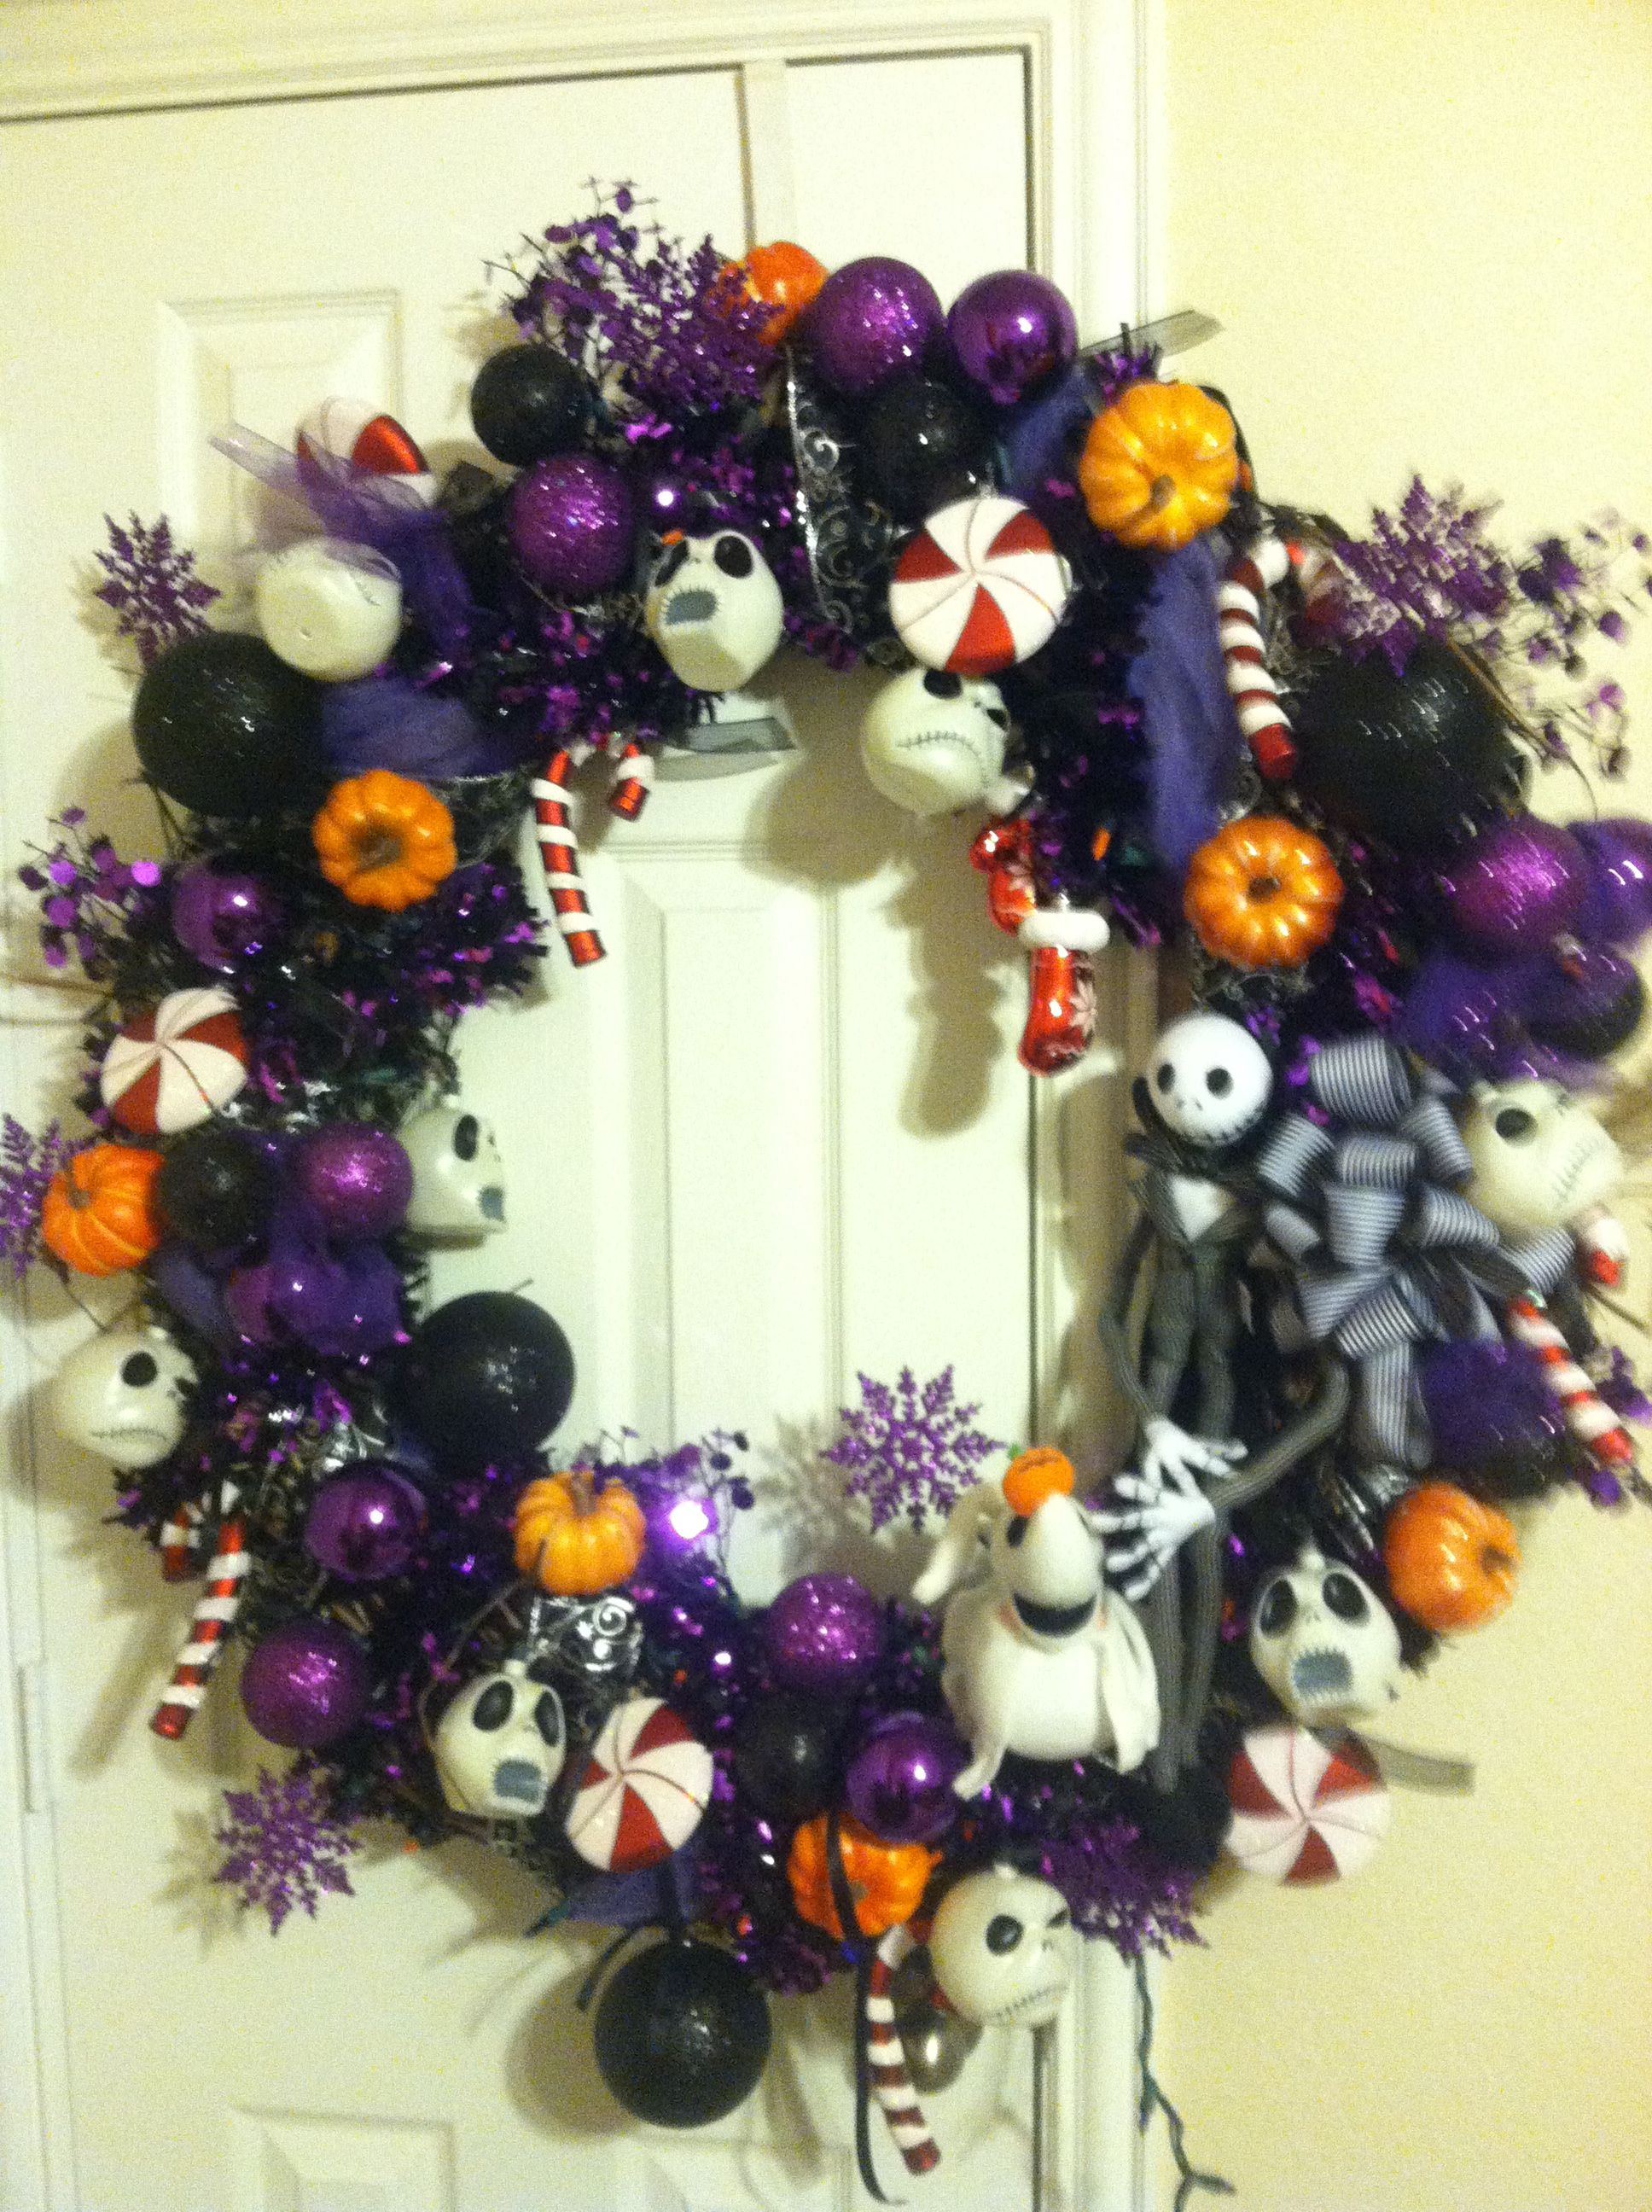 The nightmare before Christmas reef | Christmas | Pinterest ...